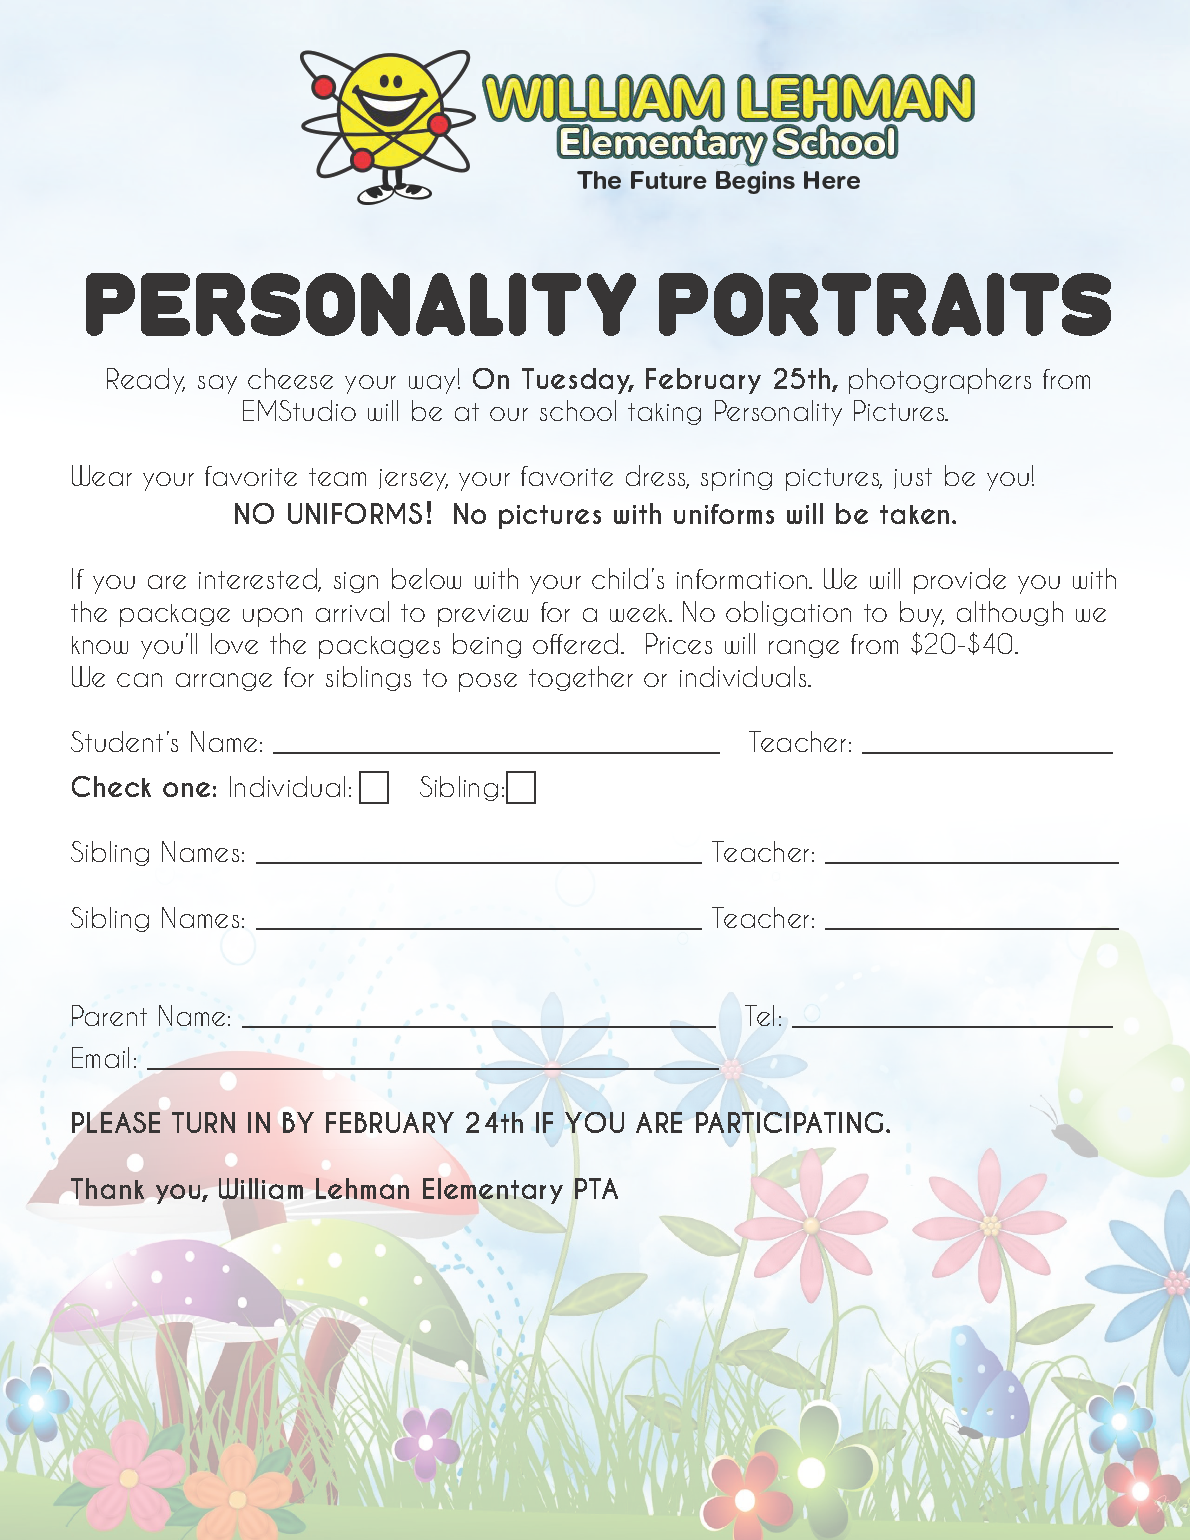 Personality Portraits Flyer